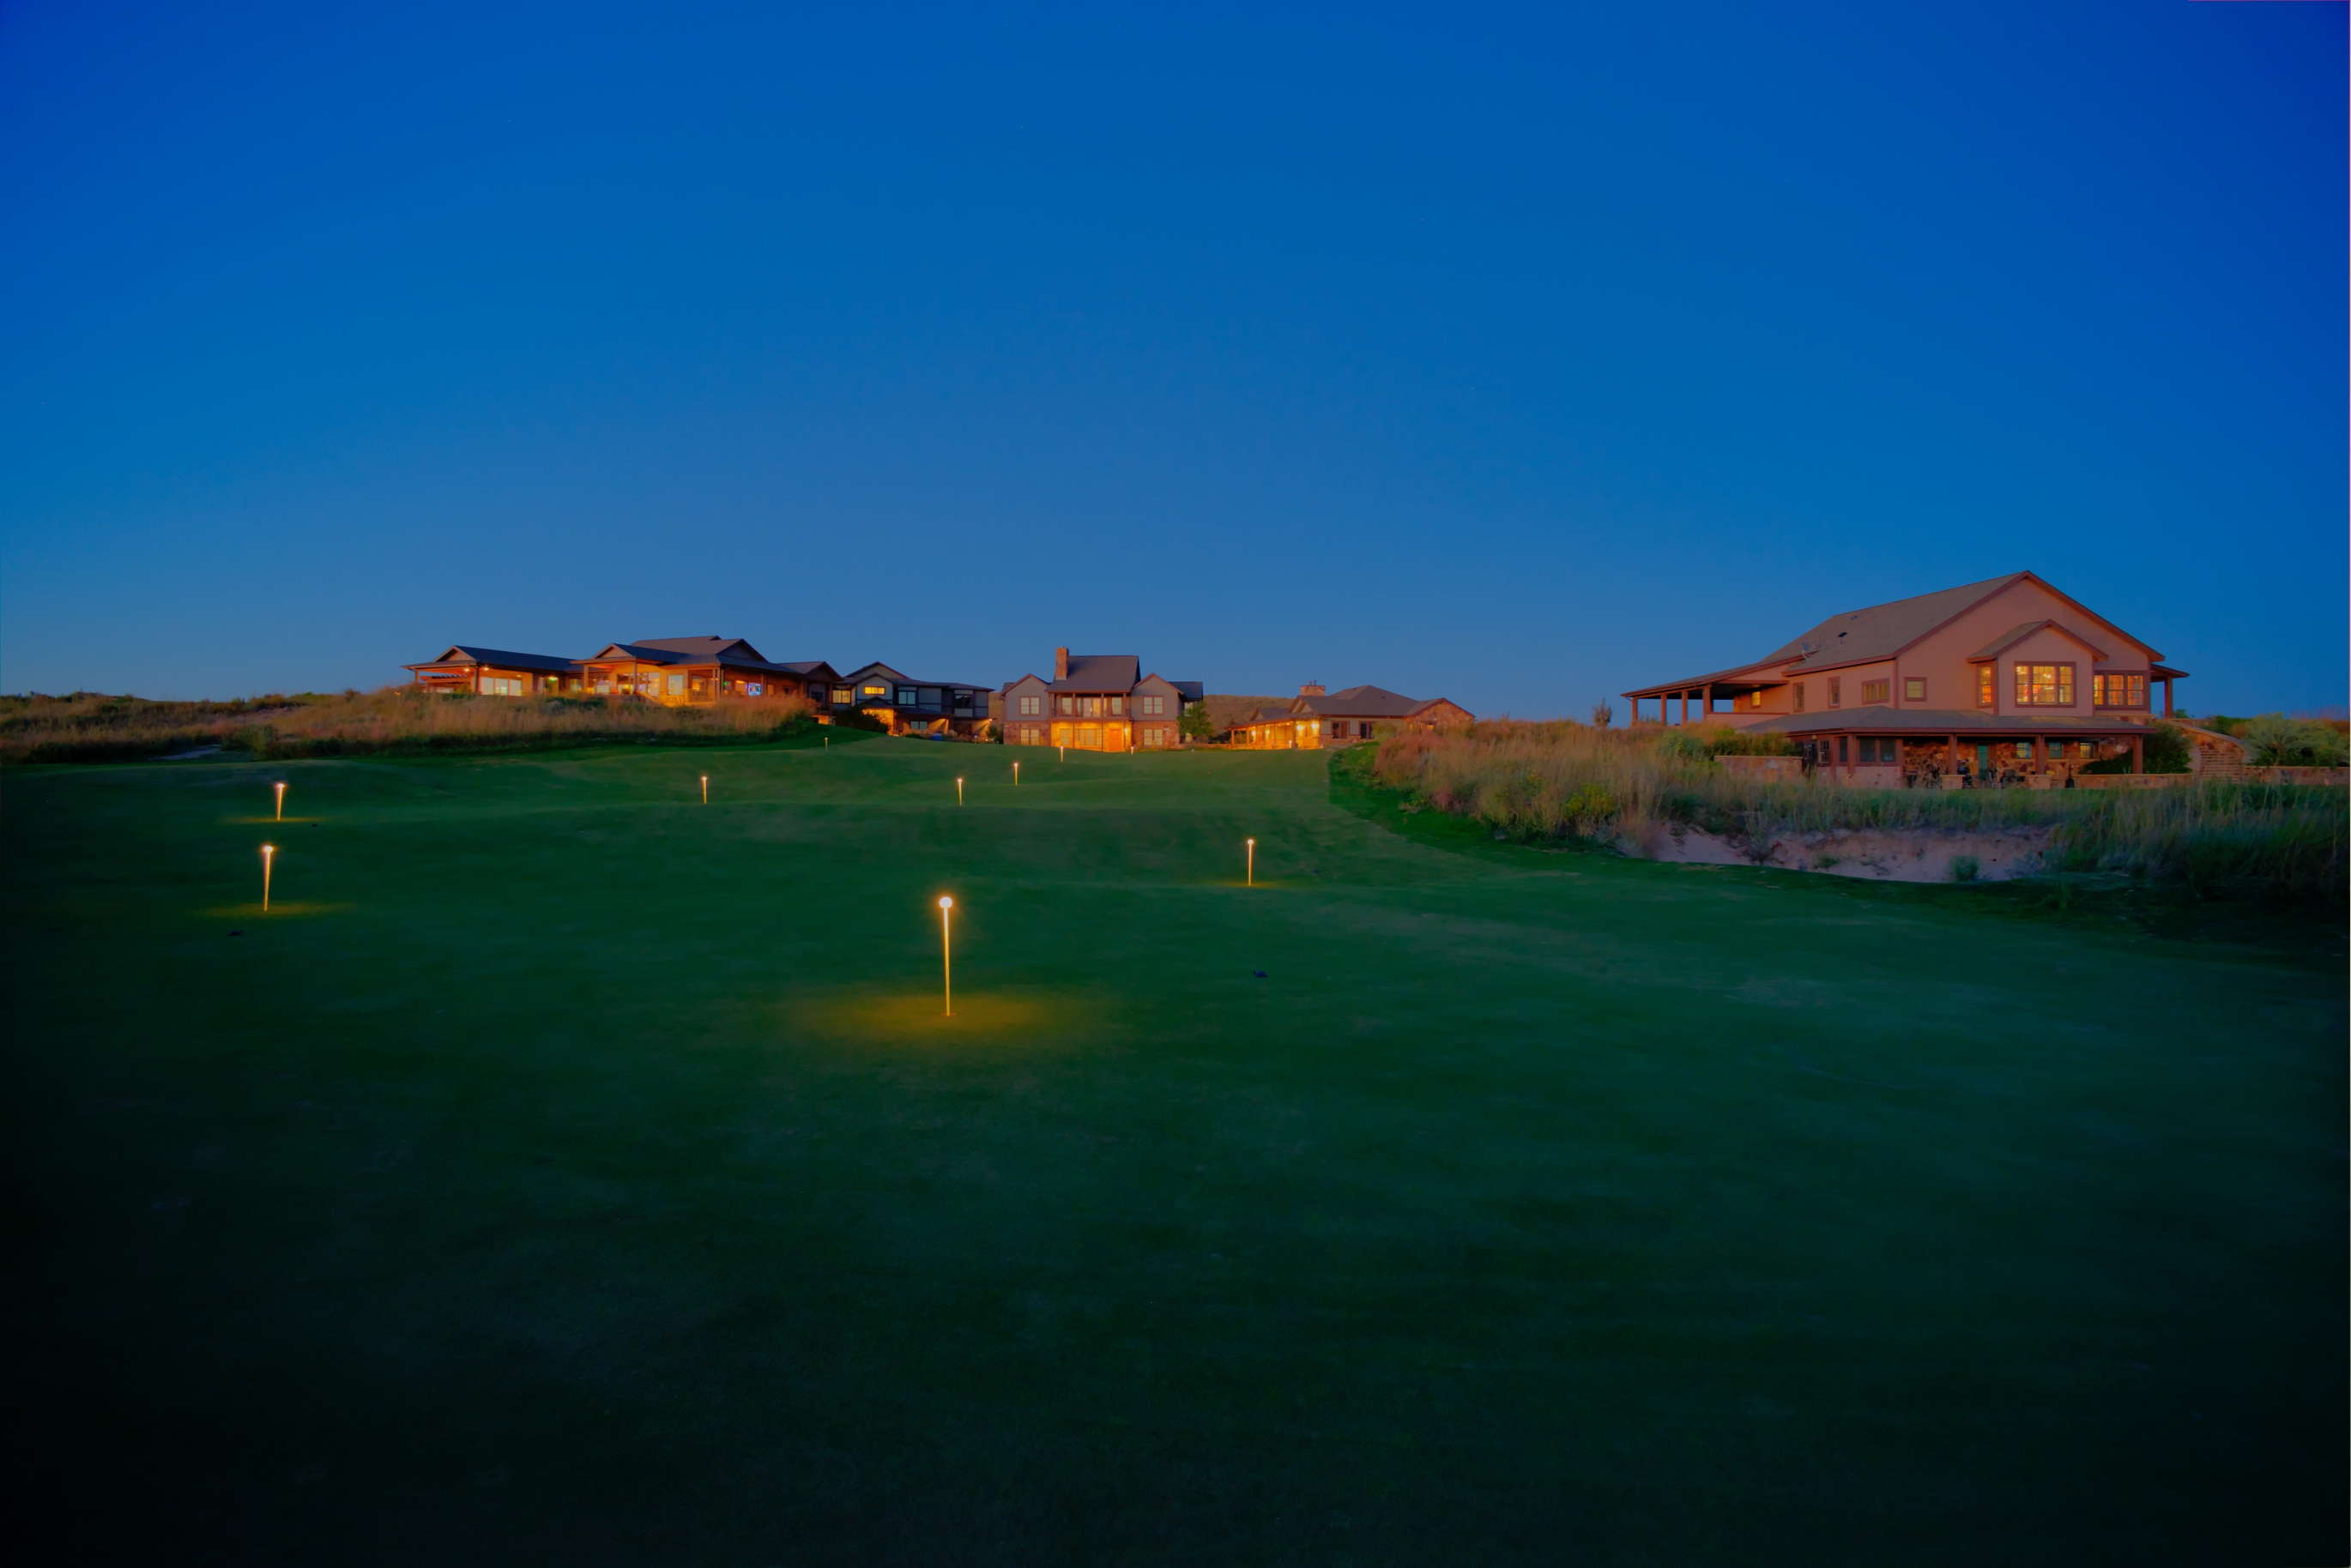 Ballyneal- the commons night putting